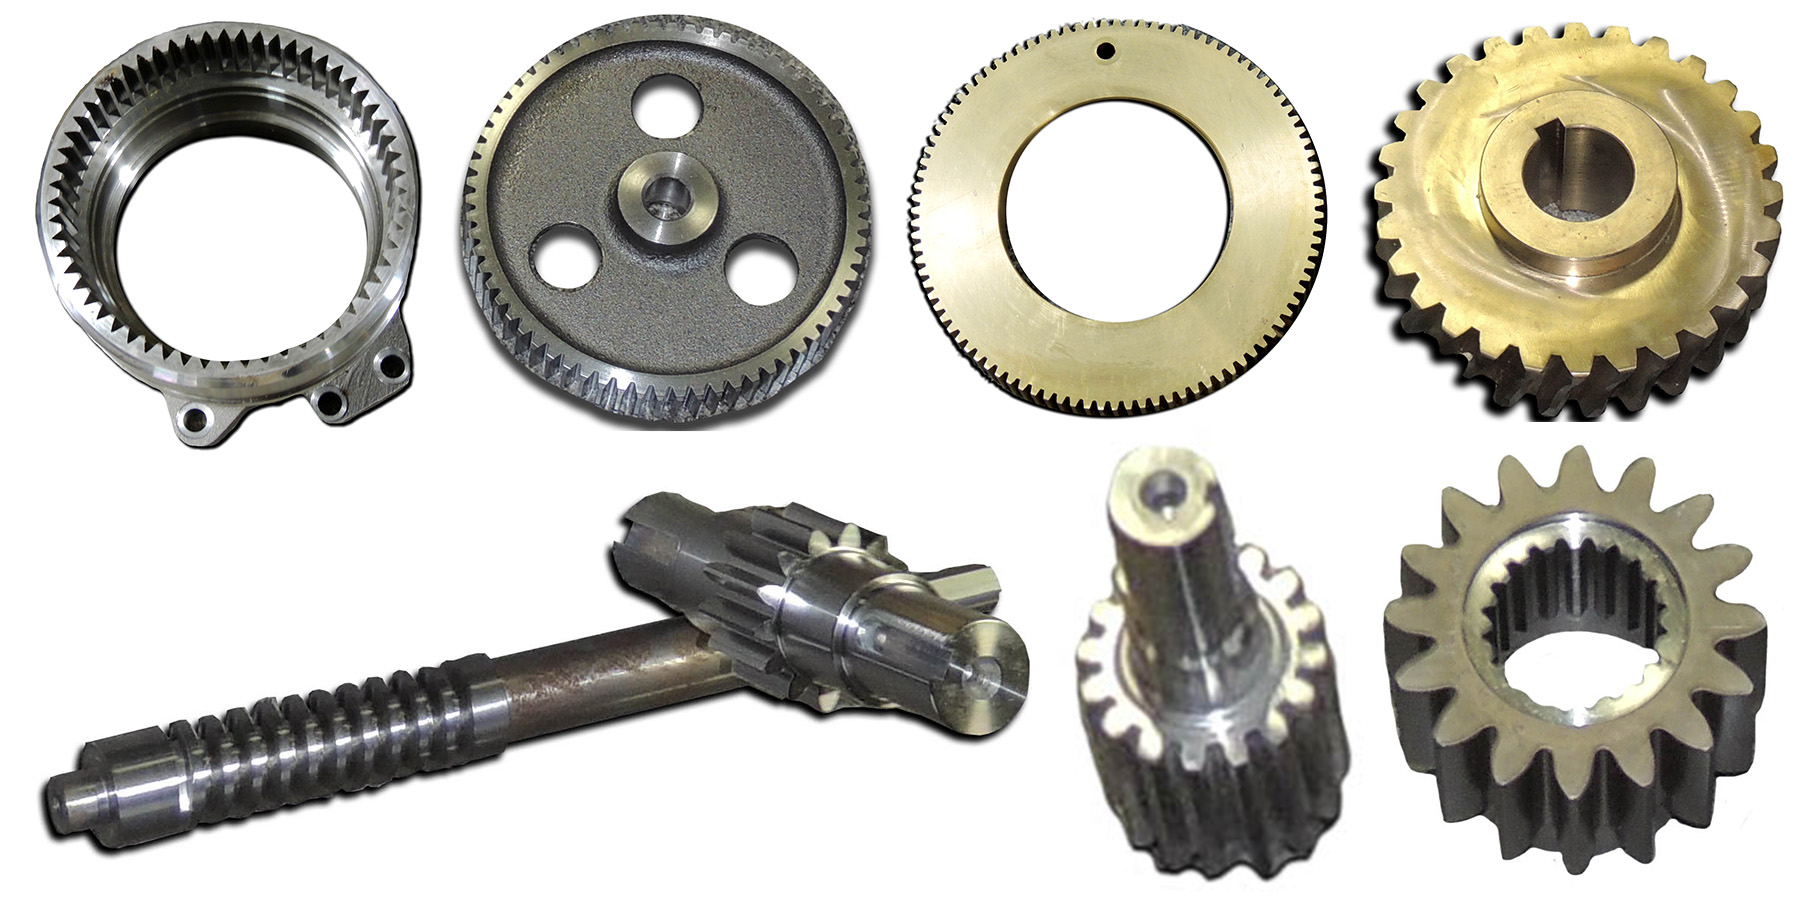 JonMar Gear and Machine uses their equipment and capabilities to machine and manufacture a wide assortment of parts and products.